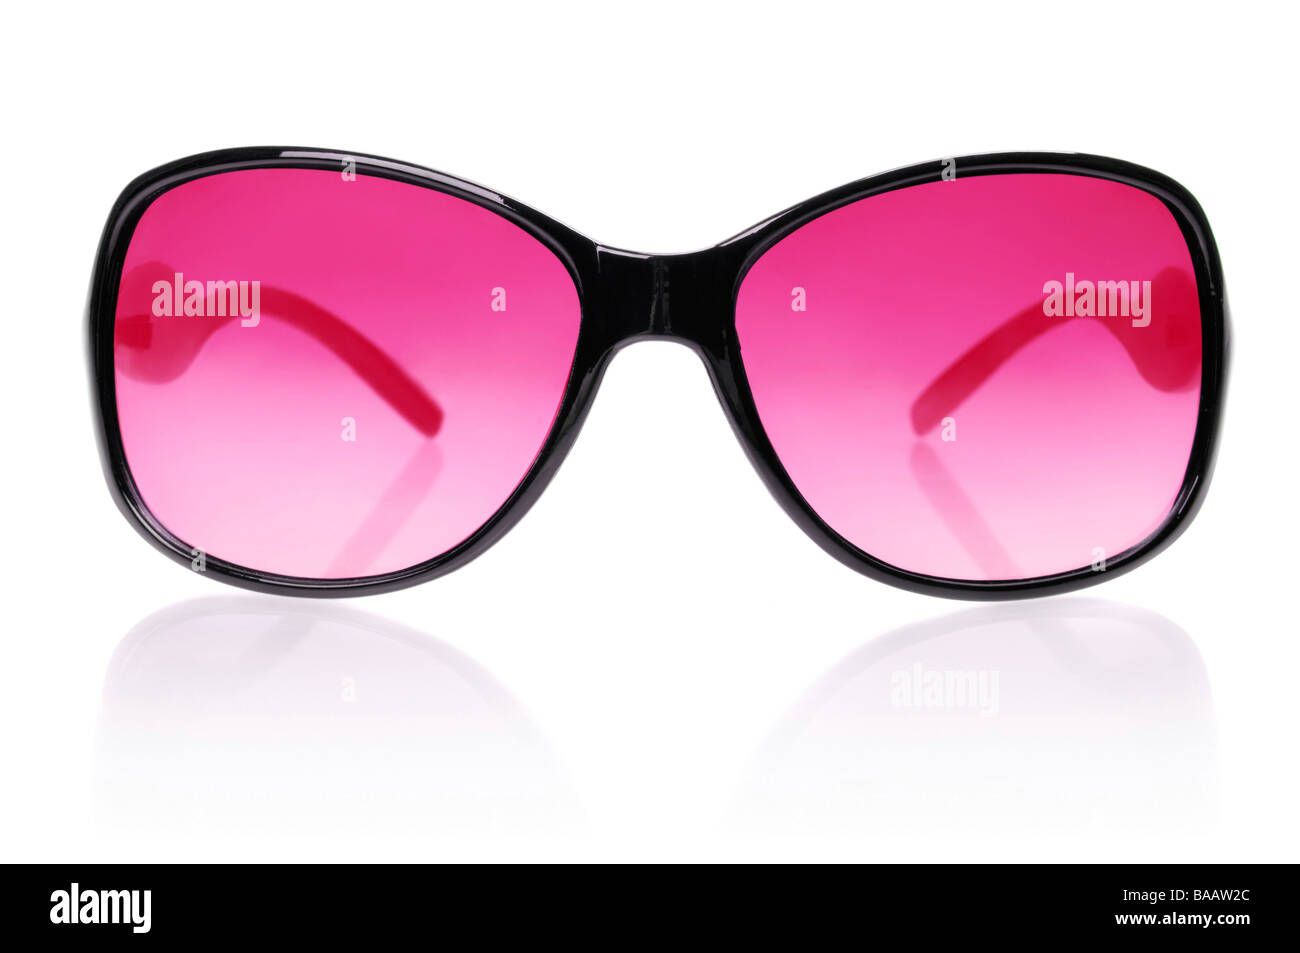 Pink sunglasses - Stock Image